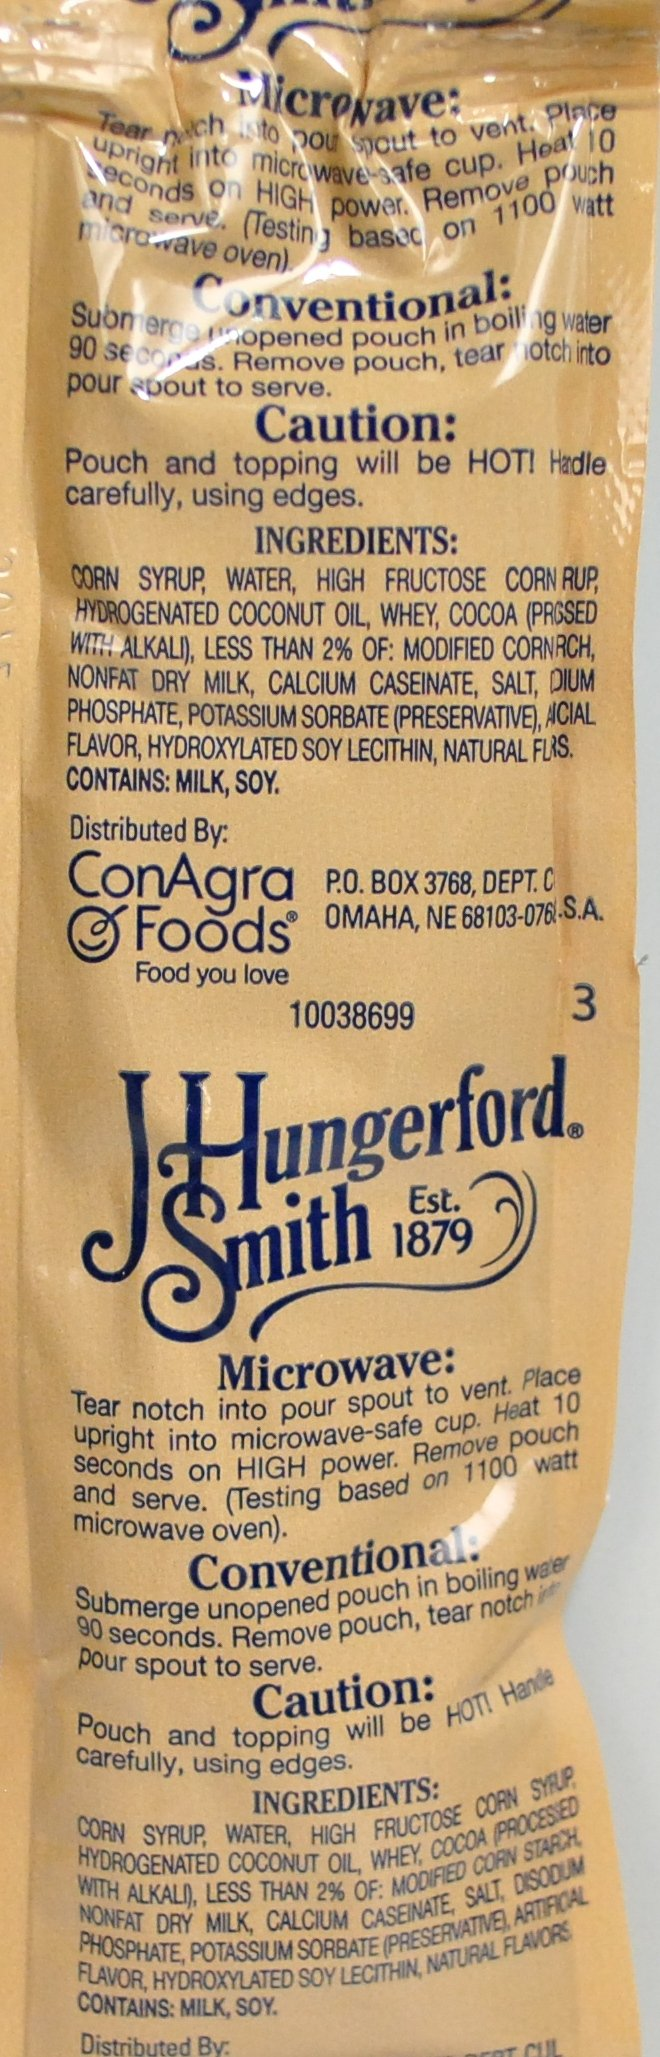 J. Hungerford Smith Chocolate Fudge Topping (box of 96) by J. Hungerford Smith